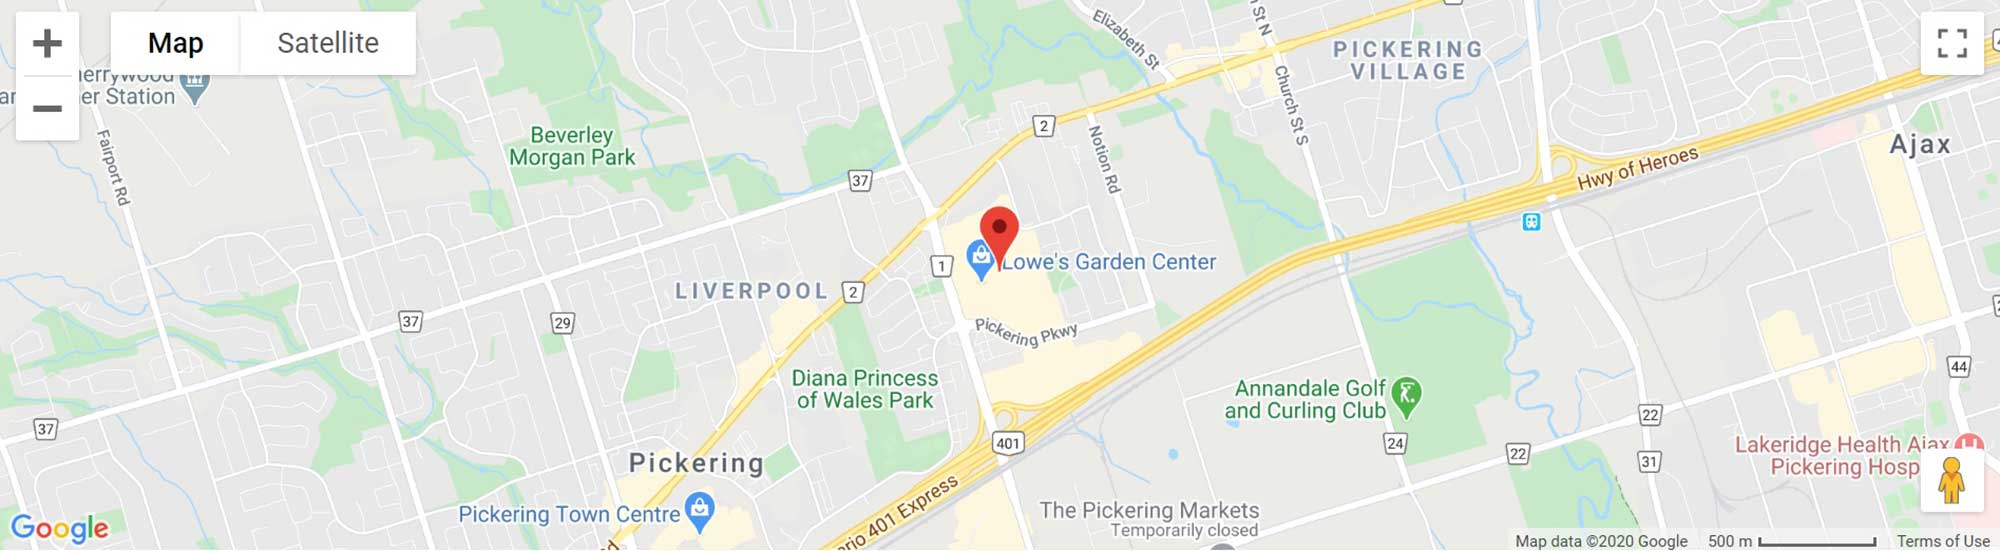 SMARTCENTRES PICKERING on map